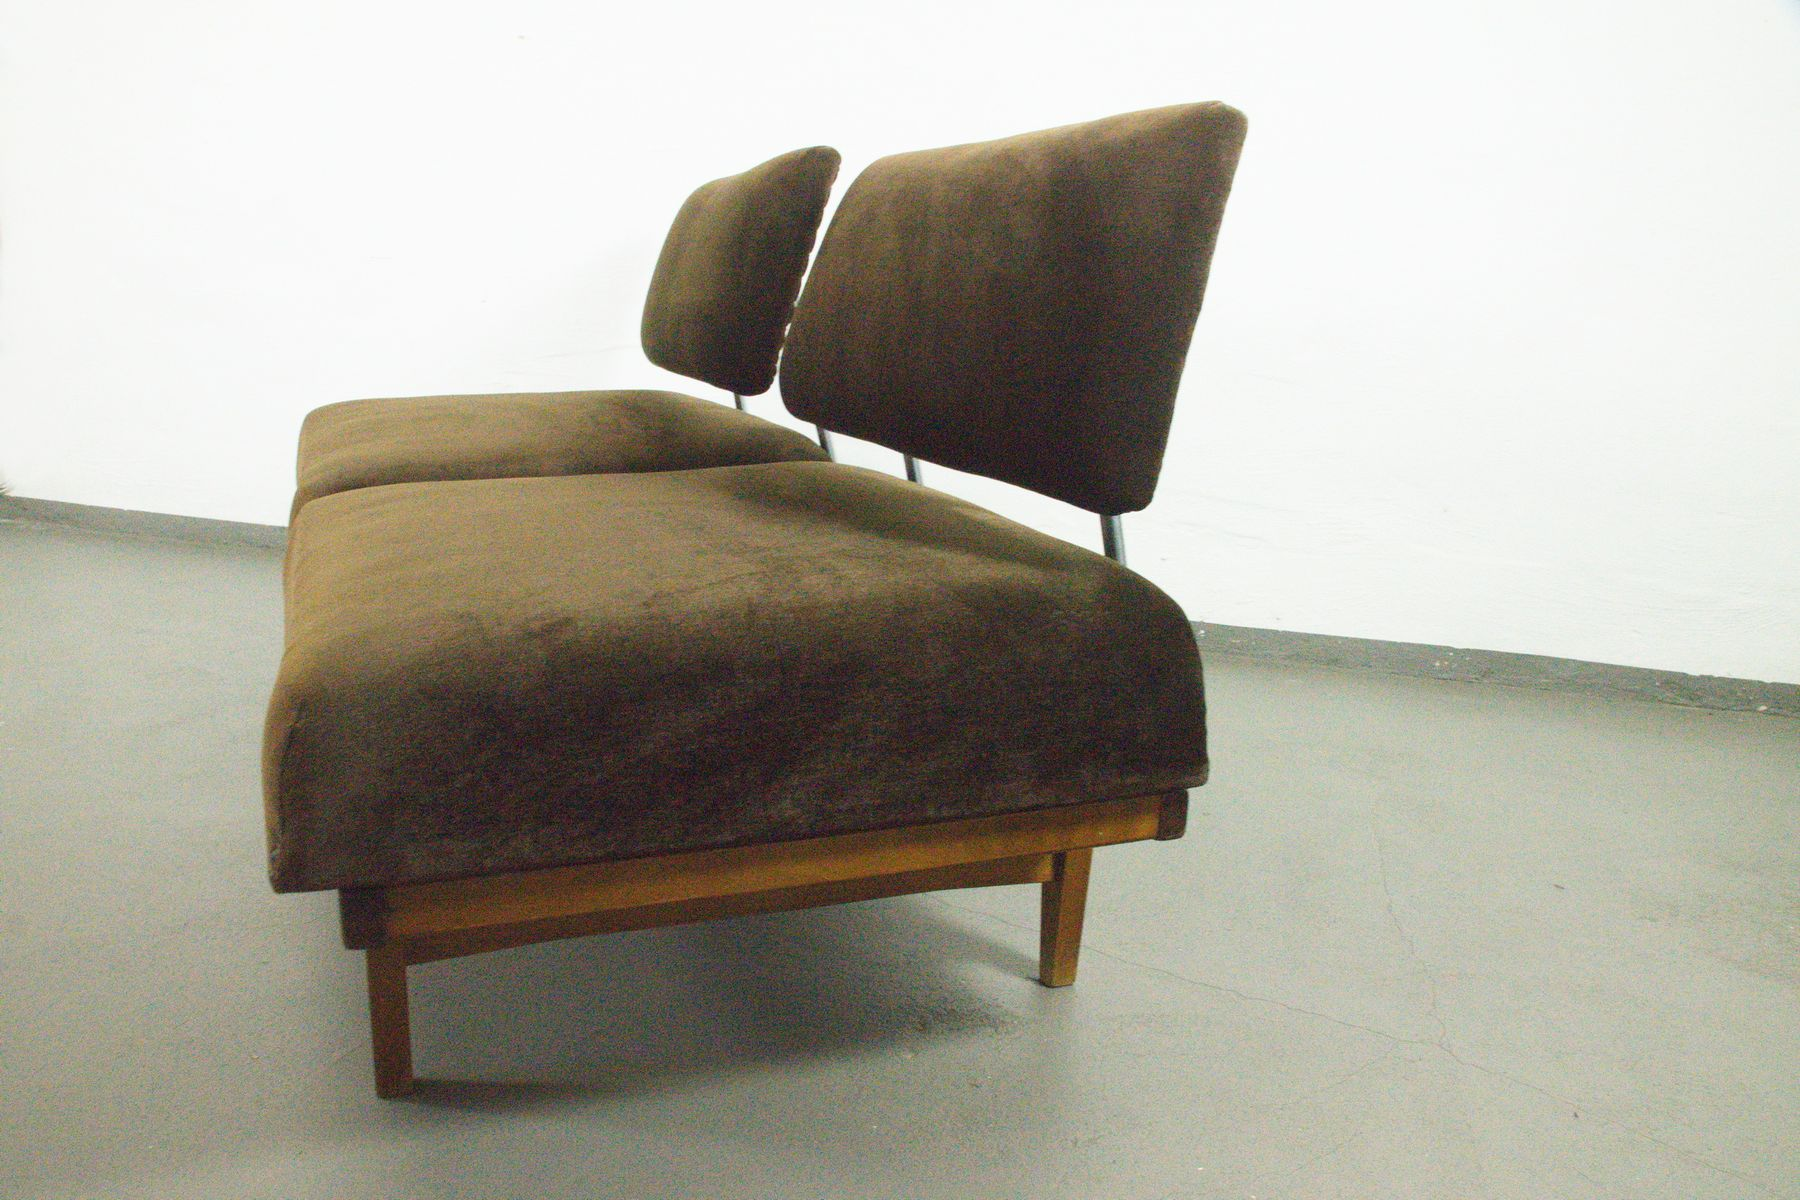 Vintage stella daybed by walter knoll for sale at pamono vintage stella daybed by walter knoll parisarafo Gallery